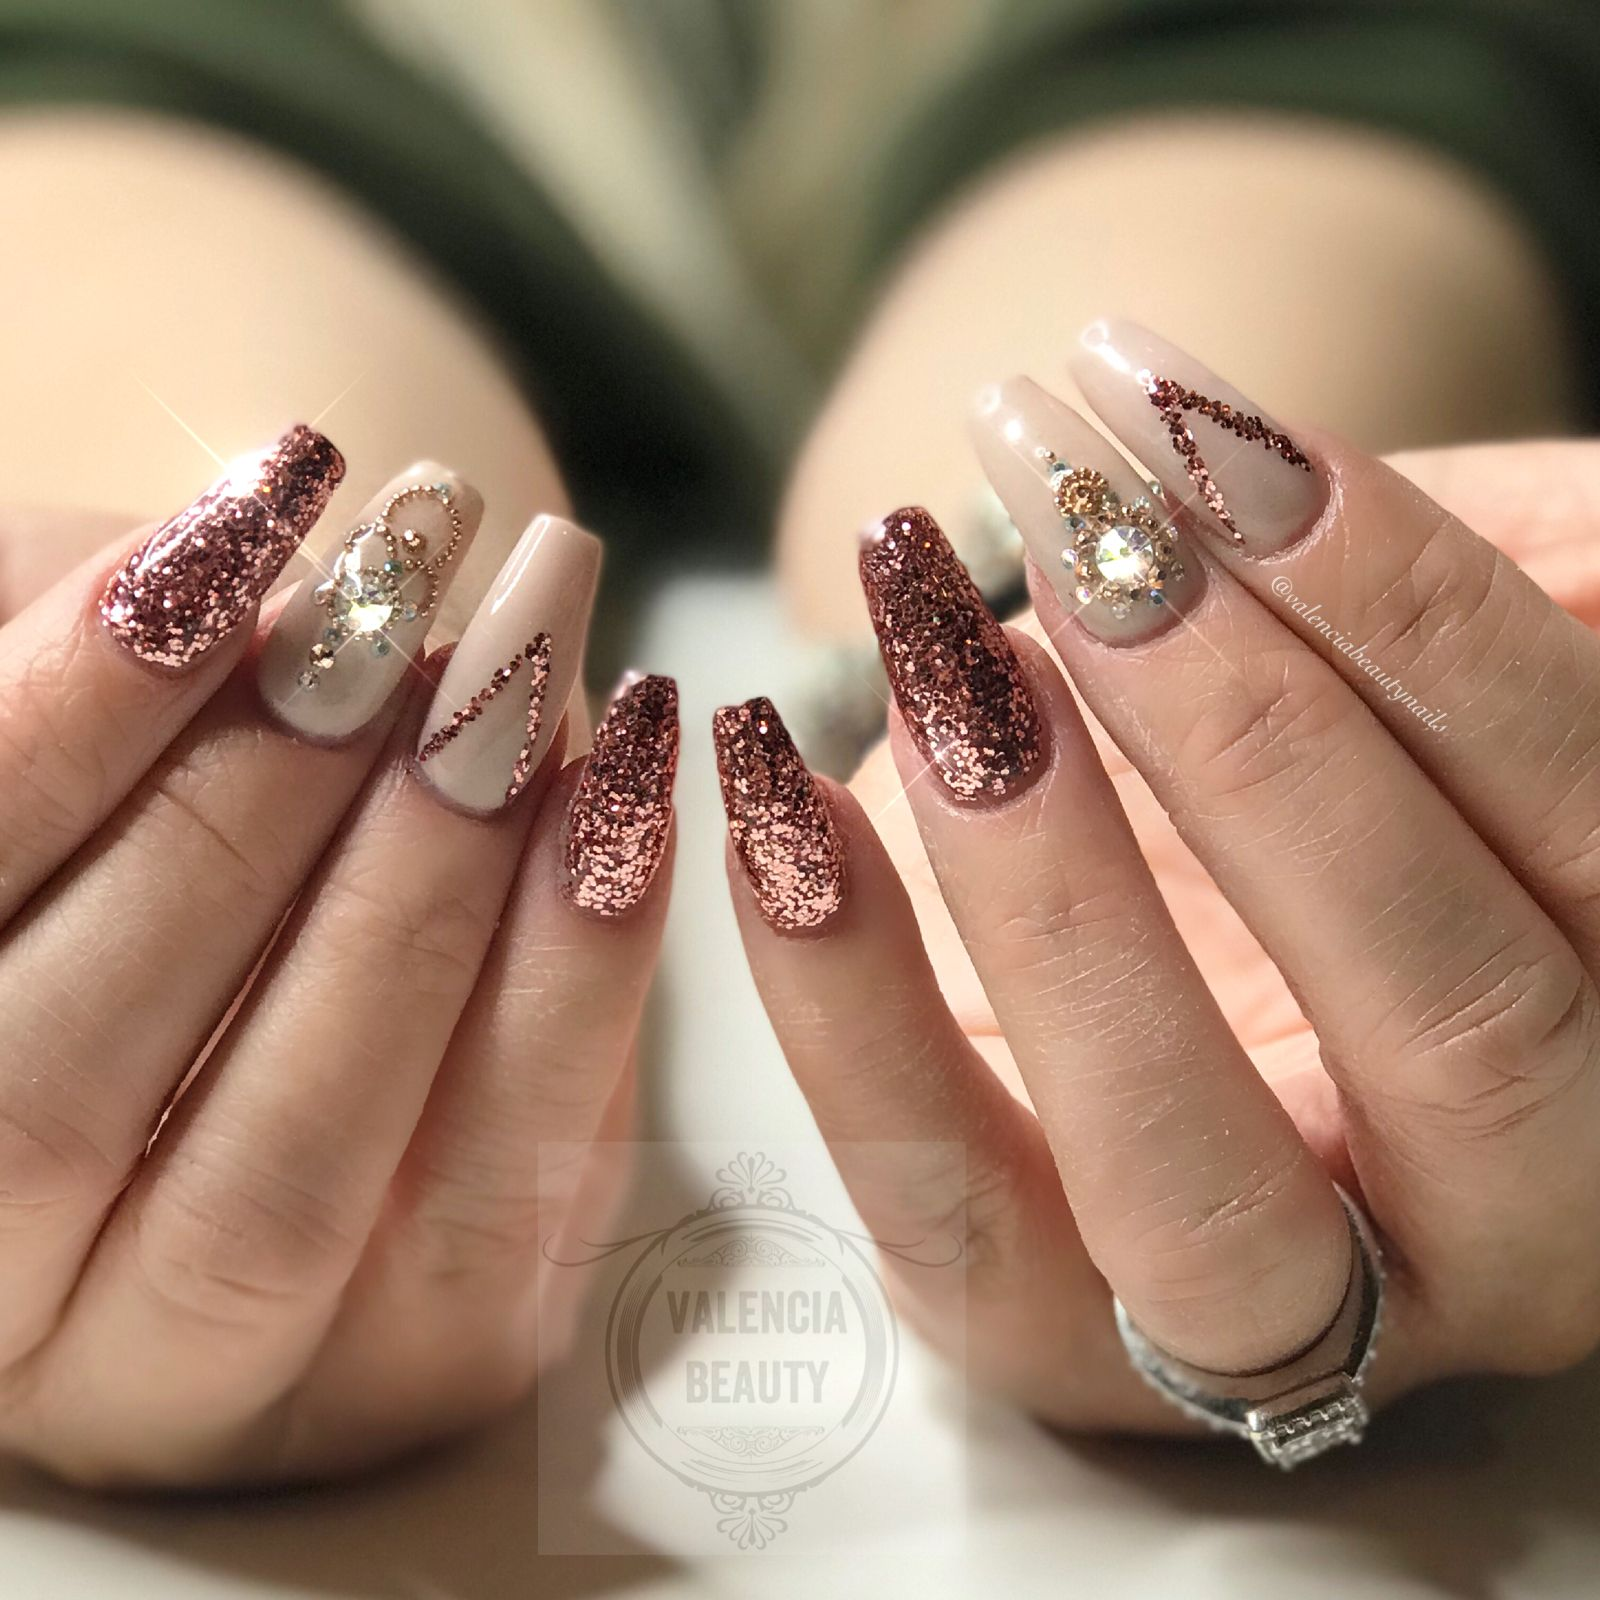 Pin by Annie Valencia on Nail ideas ❤   Pinterest   Make up ...